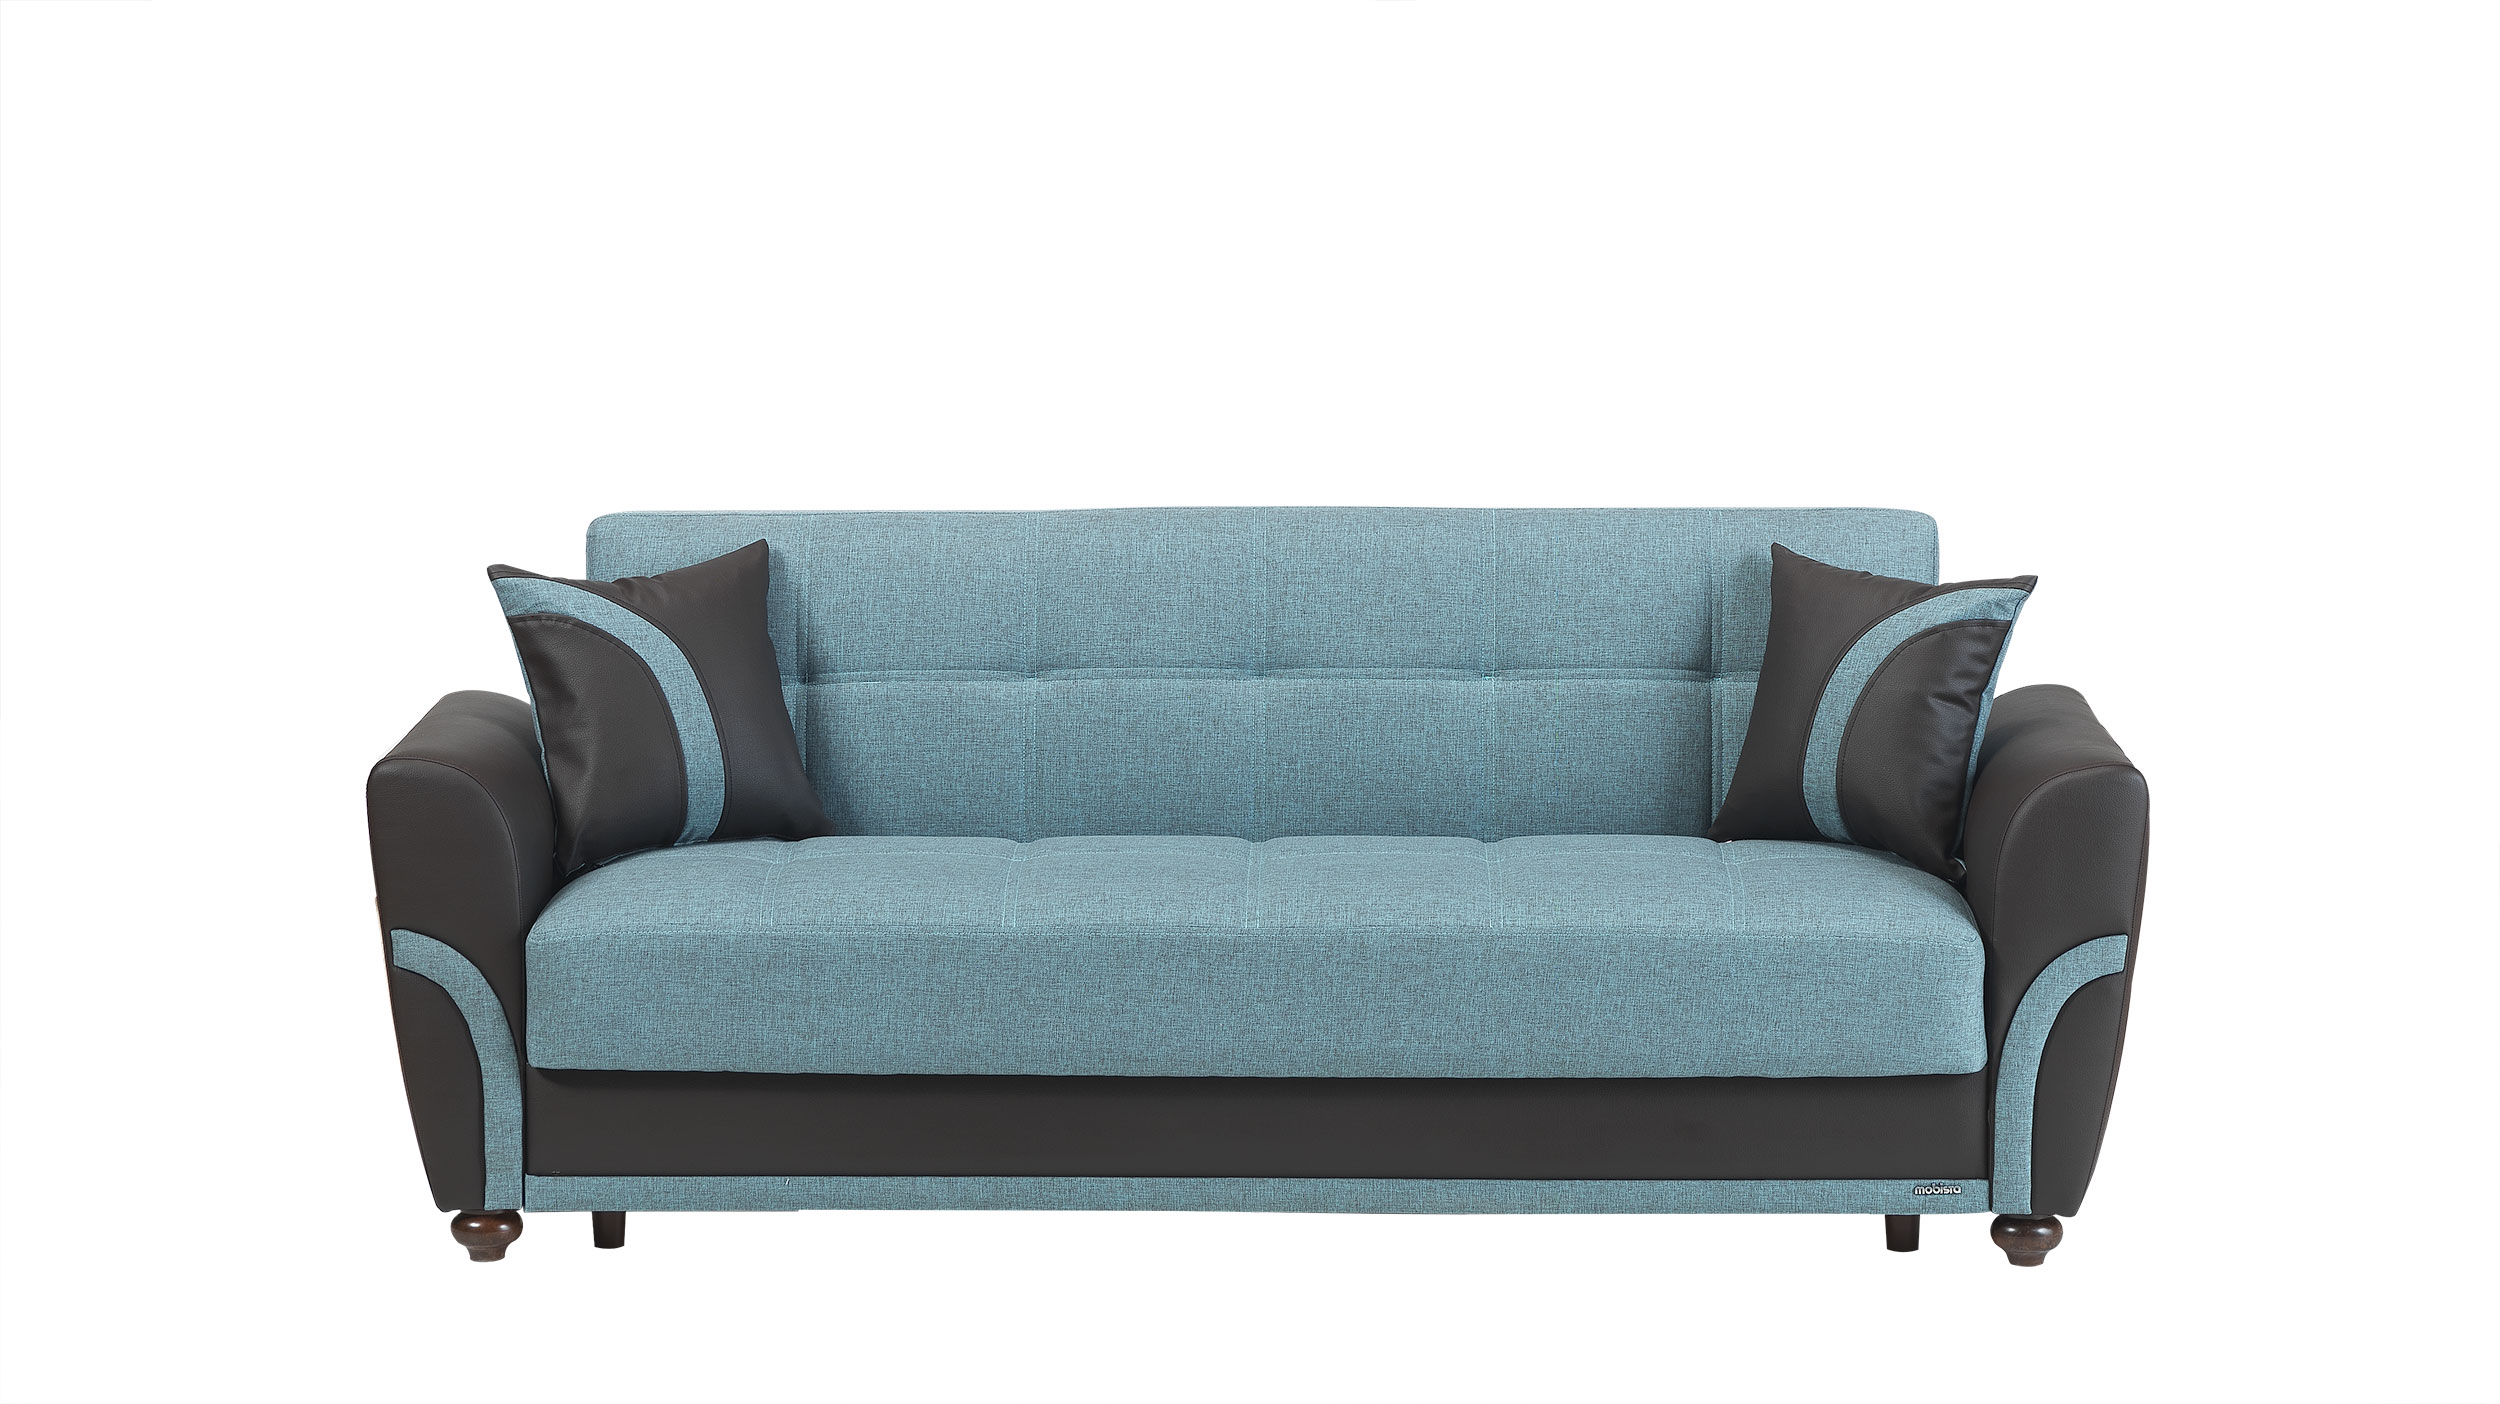 star furniture sofas sofa foam glue city turquoise bed by mobista